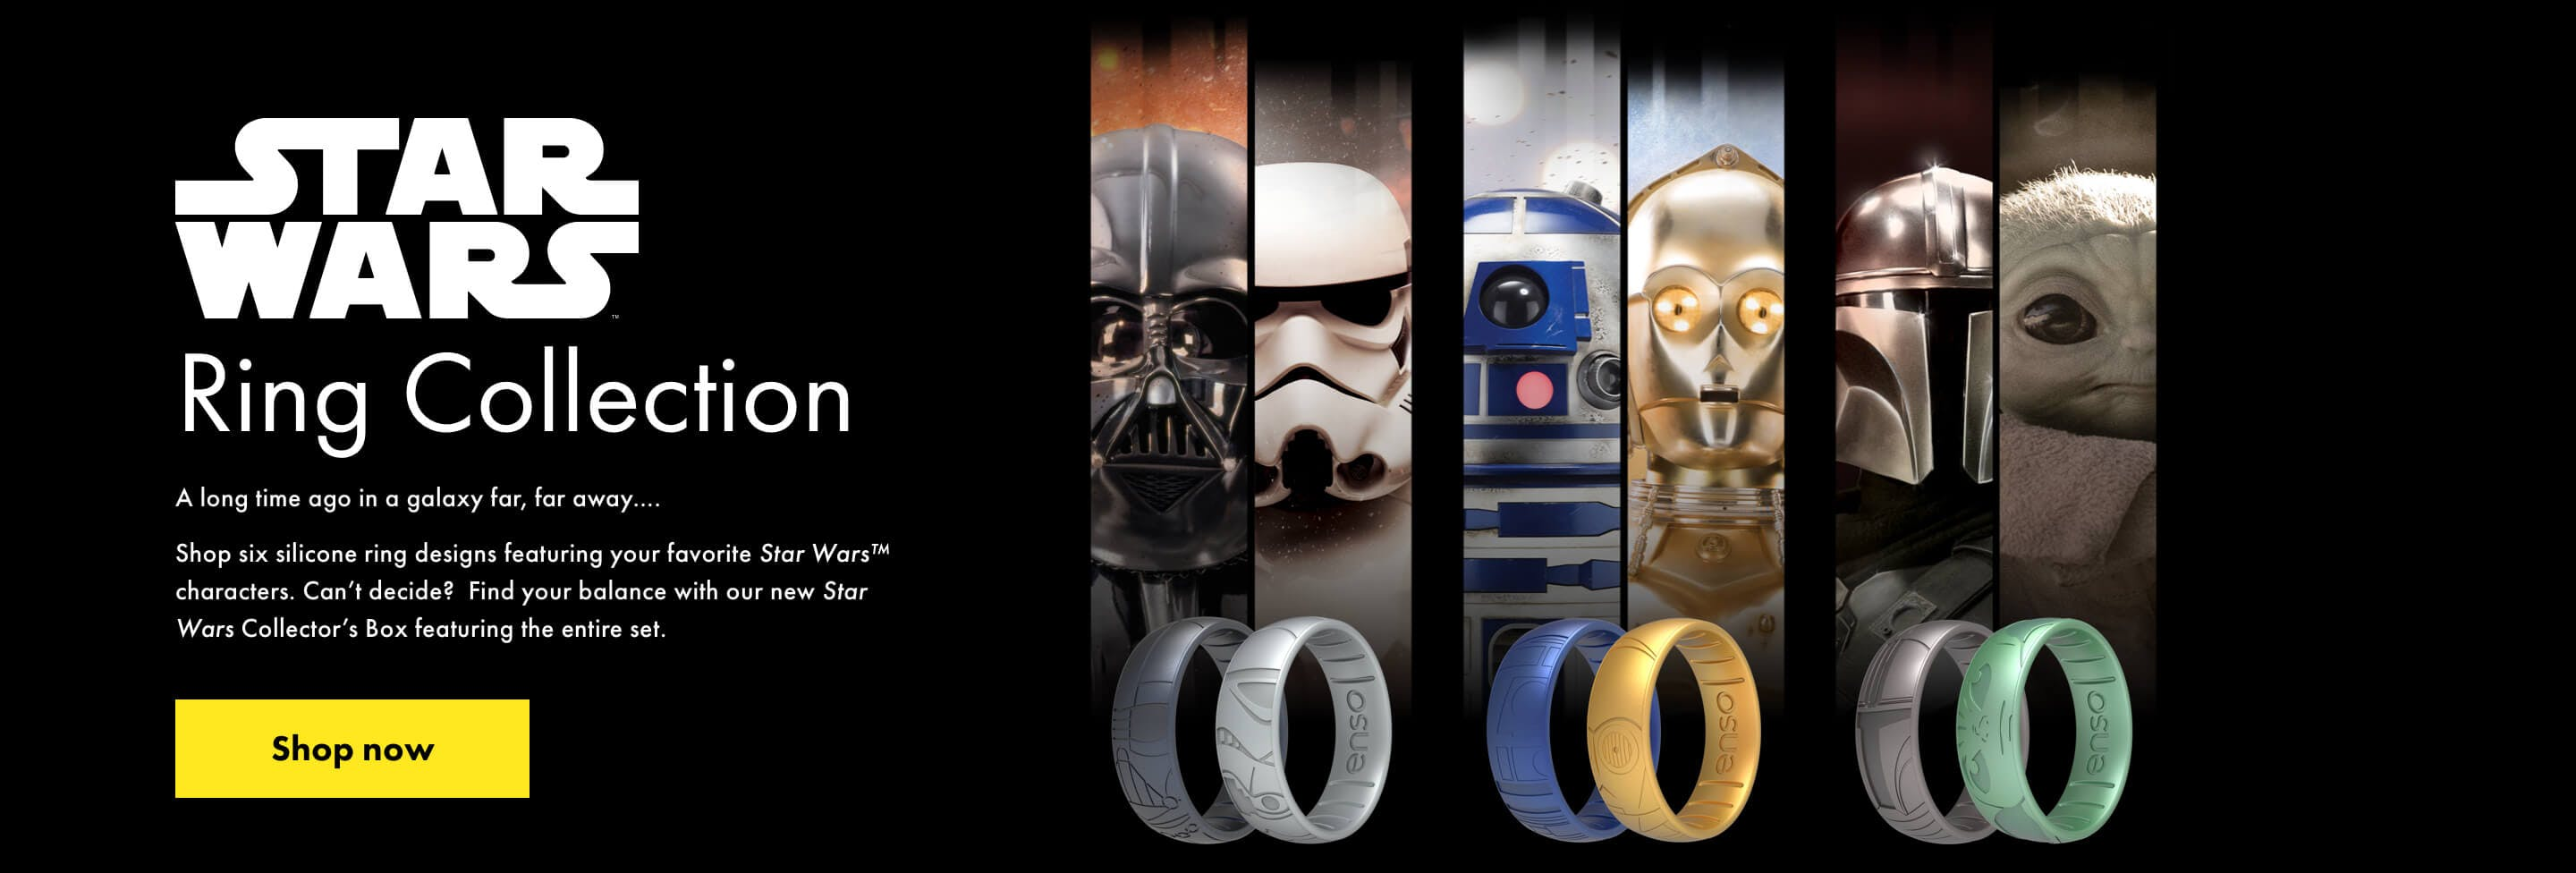 Star Wars™  Ring Collection. Shop six Star Wars silicone rings, each featuring a Star Wars character. Click here to shop now.